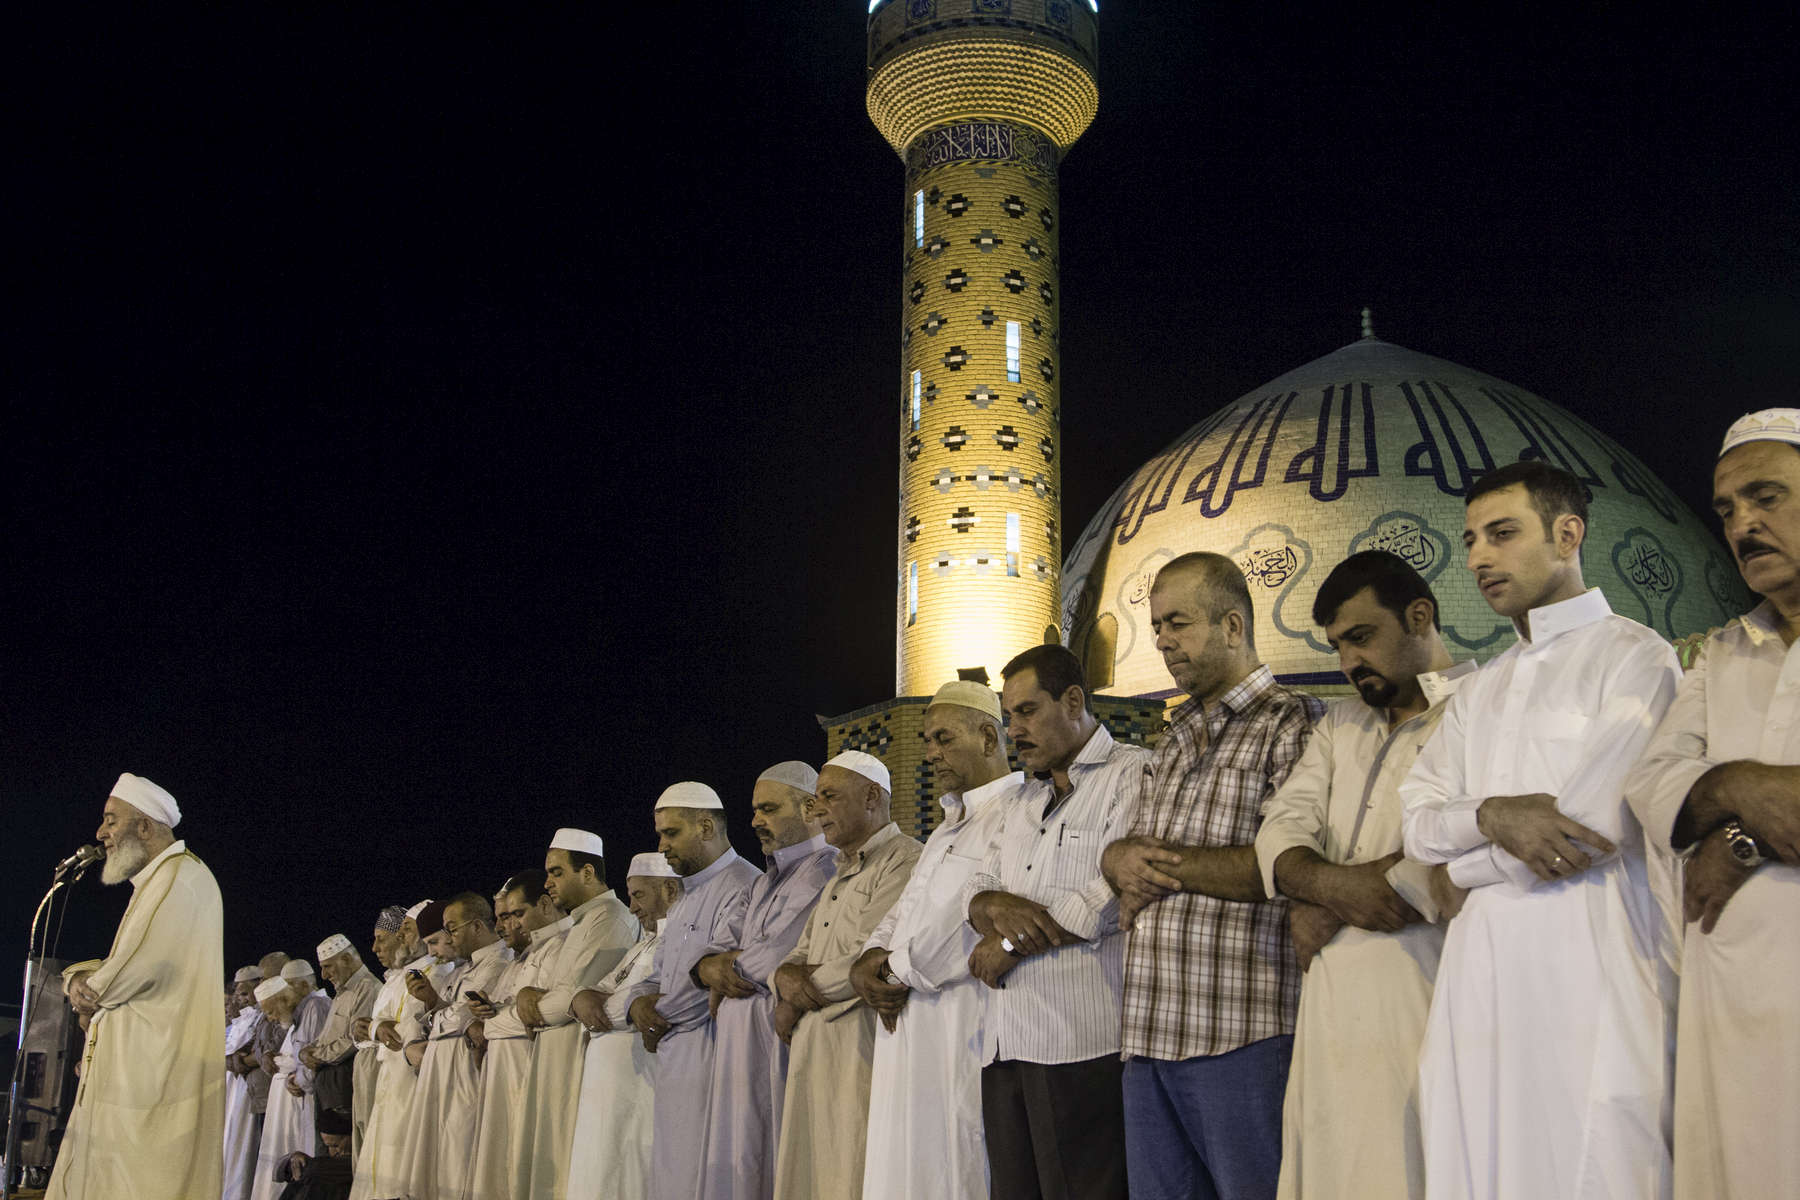 24/07/2014. Kirkuk, Iraq. Sunni residents of Kirkuk pray during Ramadan at the Takia Talabani Mosque in Kirkuk, Iraq.